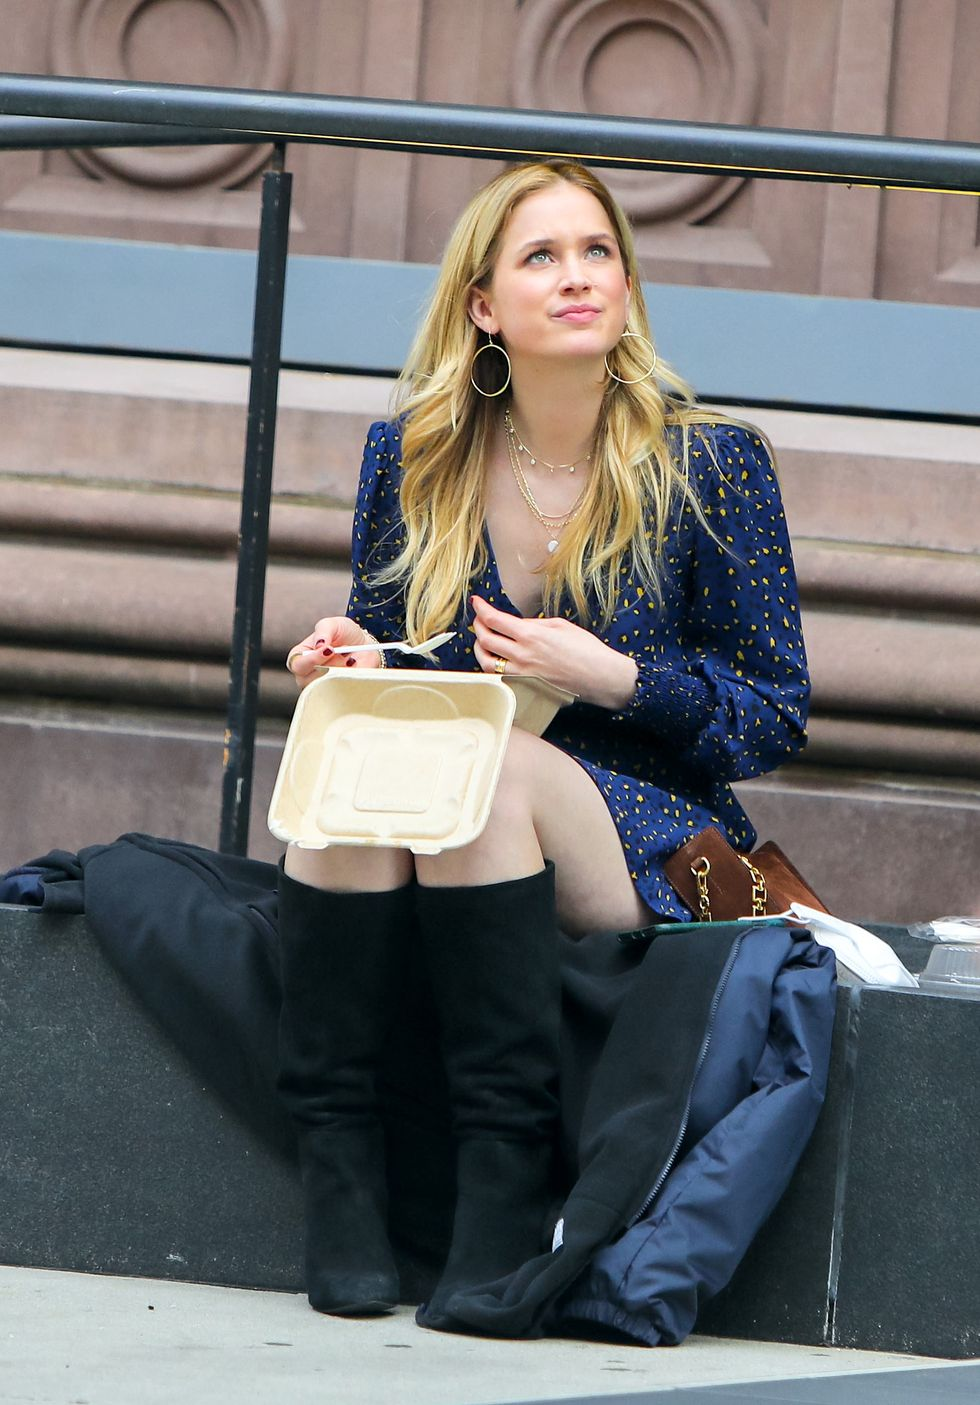 elizabeth-lail-is-seen-at-the-film-set-of-the-gossip-girl-news-photo-1617089178.?crop=1xw:1xh;center,top&resize=980:*